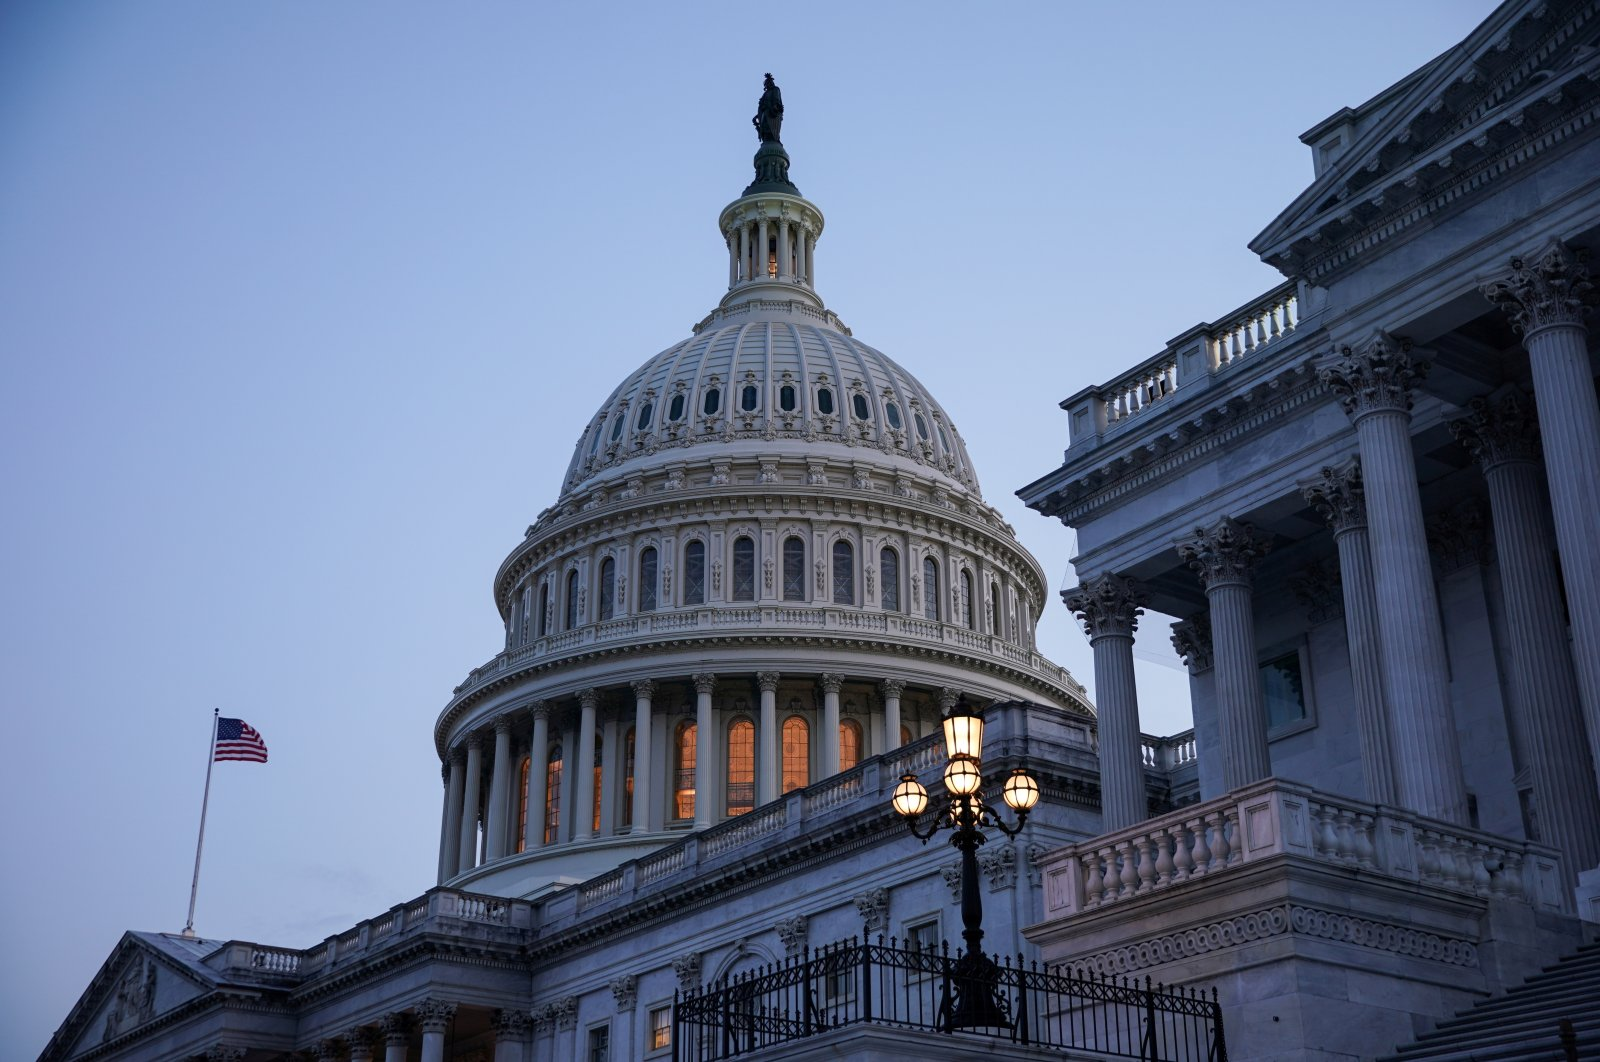 The exterior of the U.S. Capitol is seen in Washington, U.S., Aug. 8, 2021. (Reuters Photo)